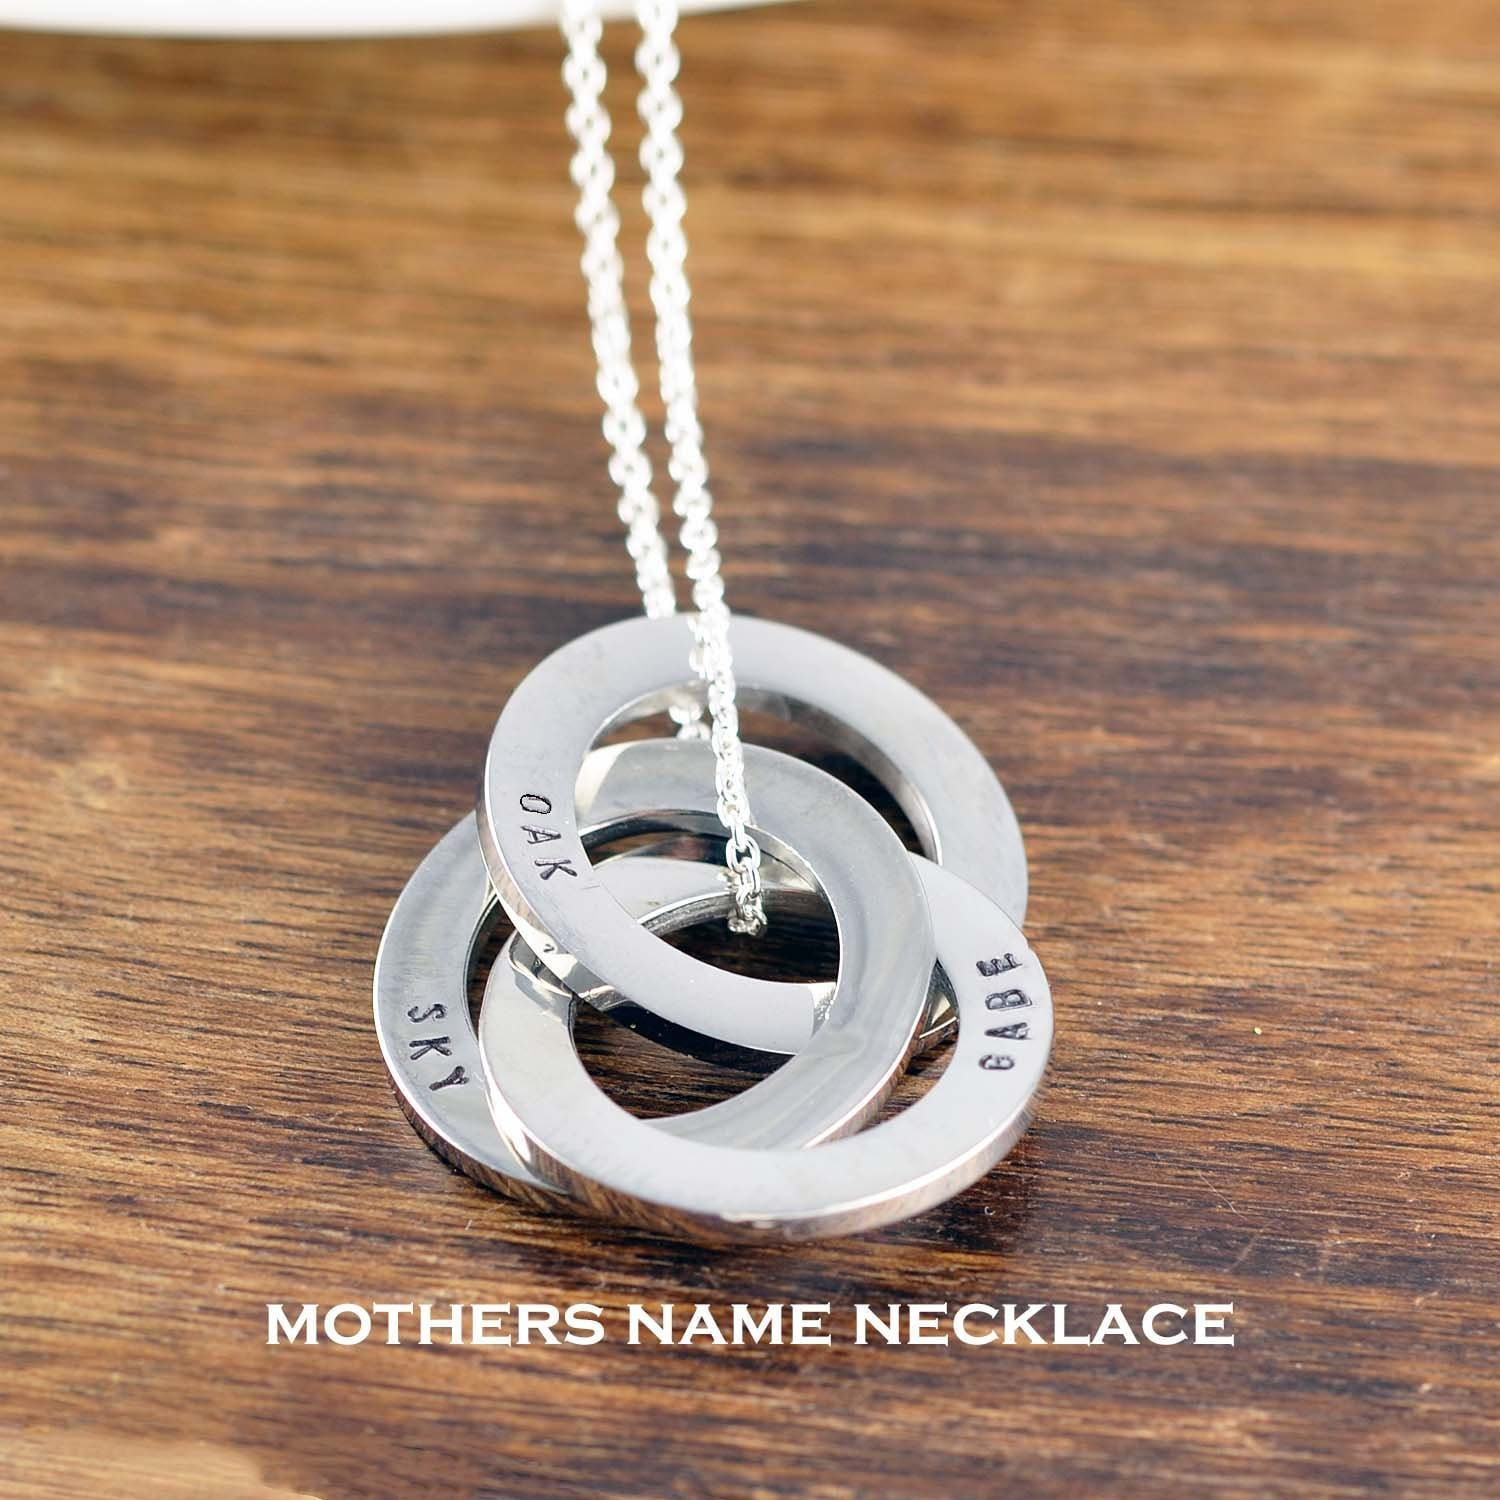 Personalized Mothers Necklace Gift For Mom Name